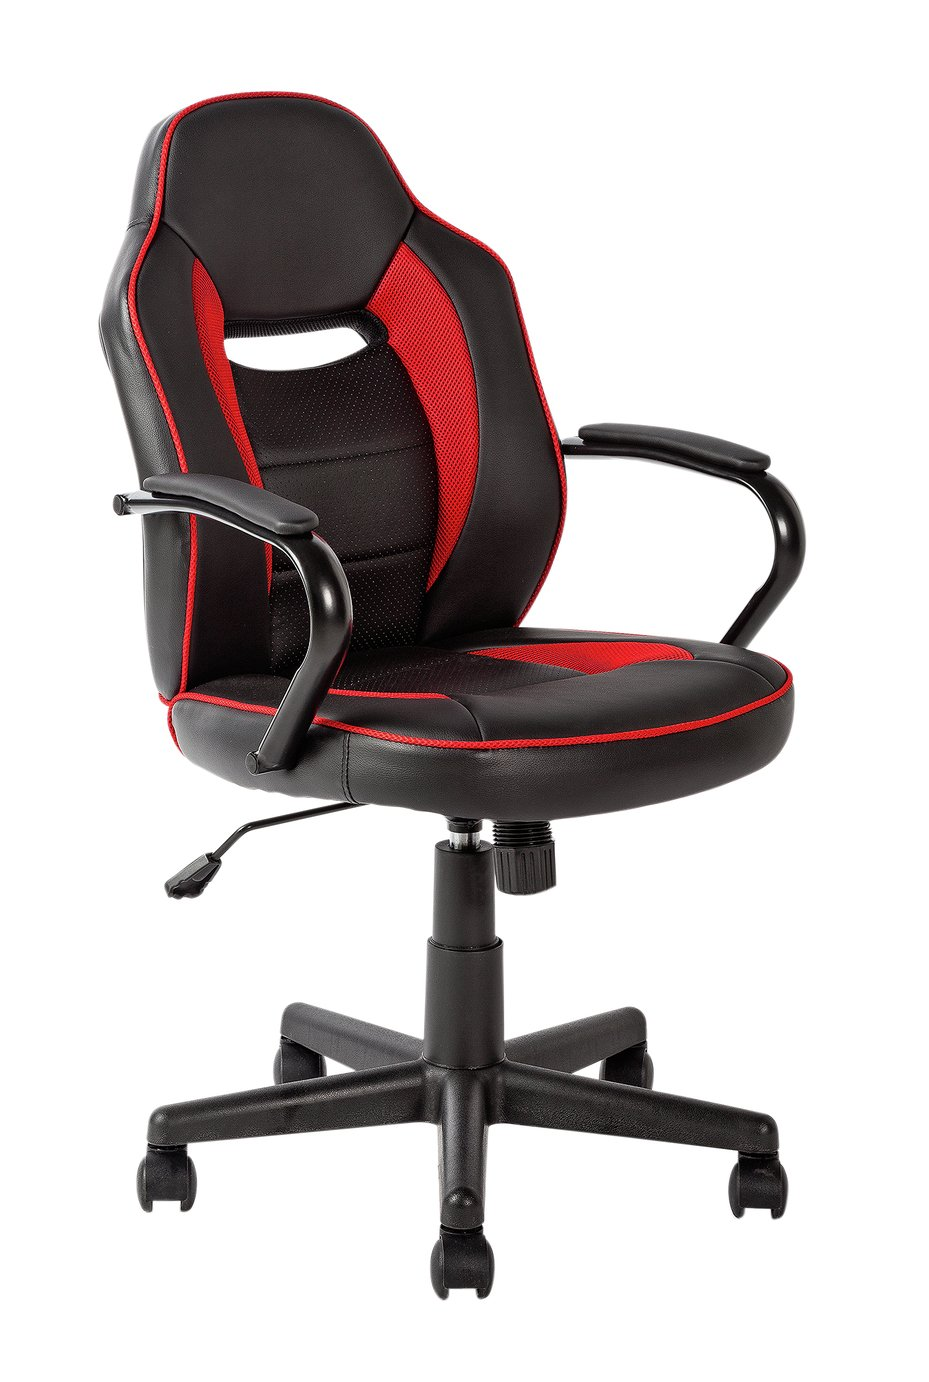 home mid back office chair red u0026 black